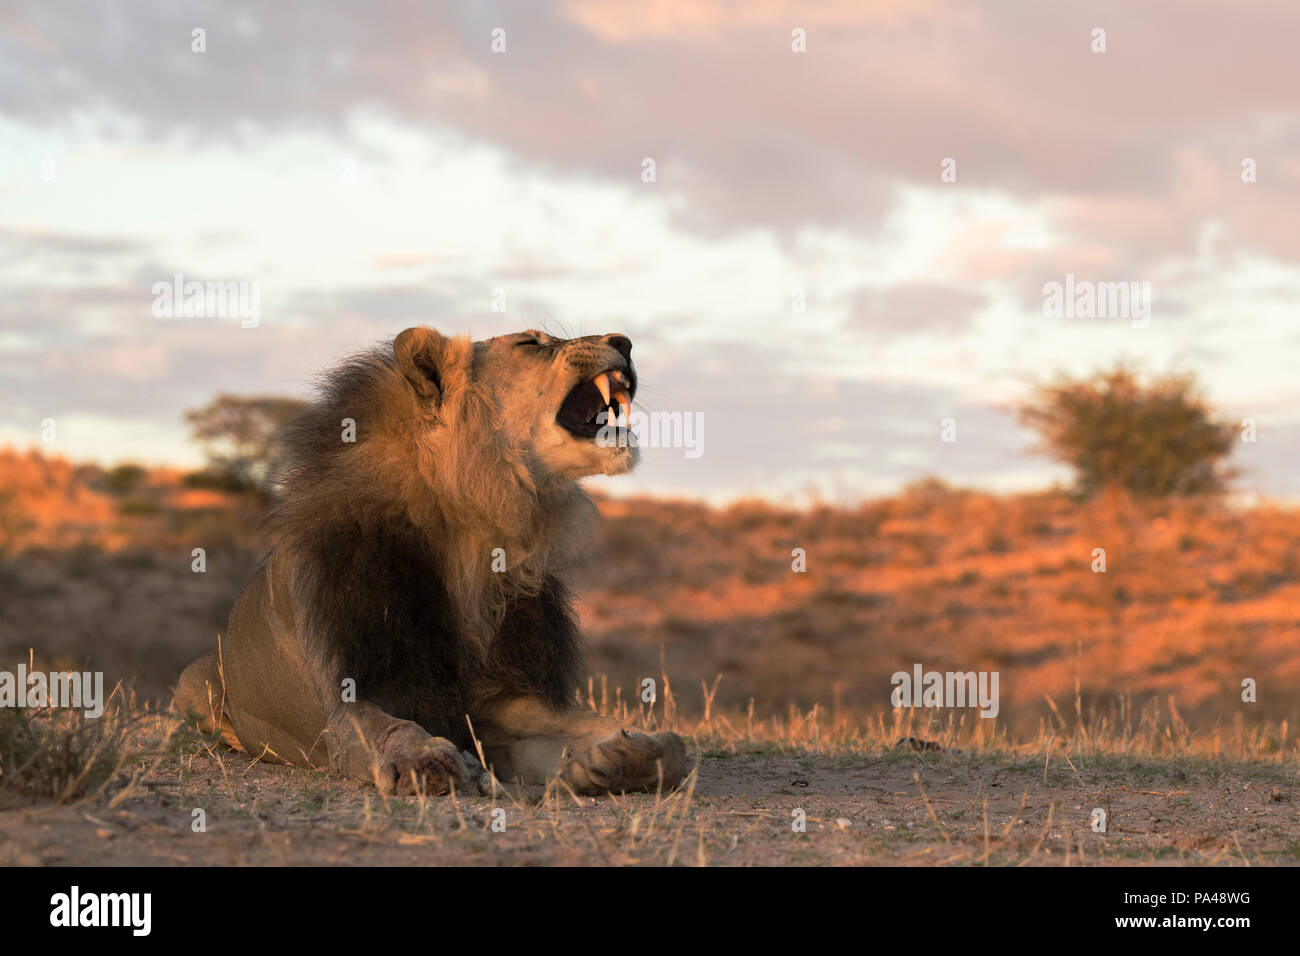 Lion (Panthera leo) male, Kgalagadi Transfrontier Park, South Africa, - Stock Image